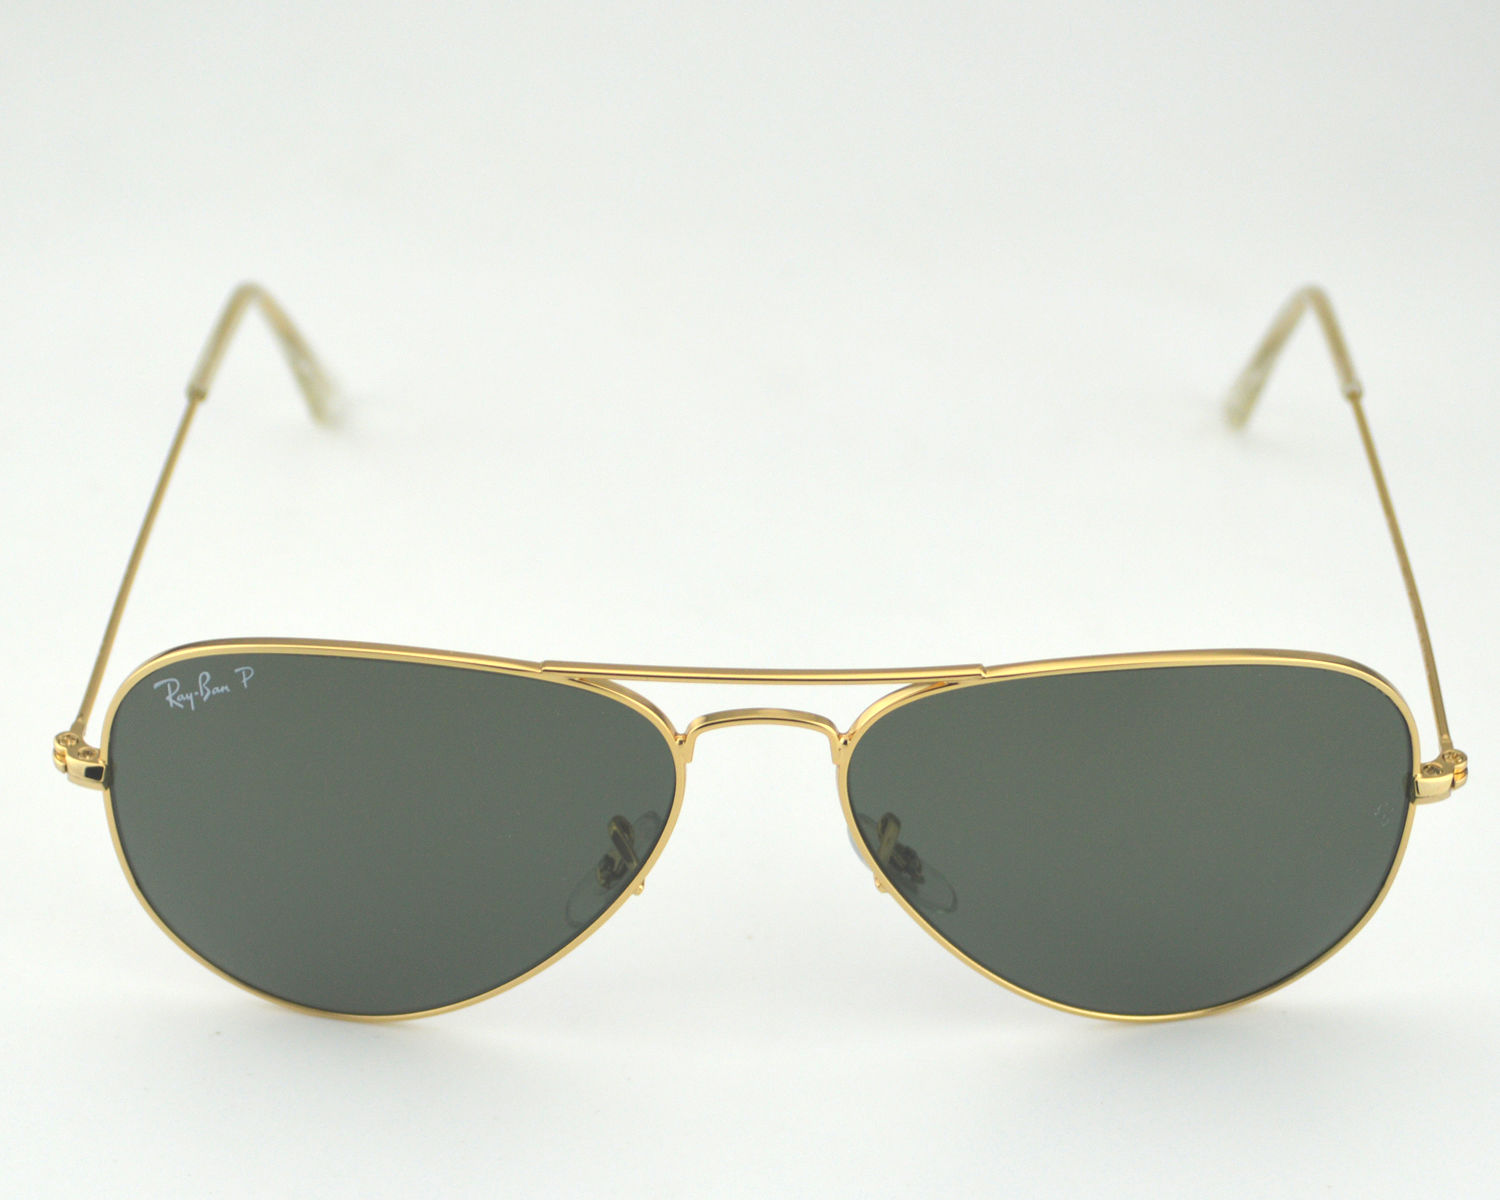 849be30ee0e97 ... sweden ray ban rb3025 aviator classic 001 58 gold frame polarized green  classic g 15 lenses